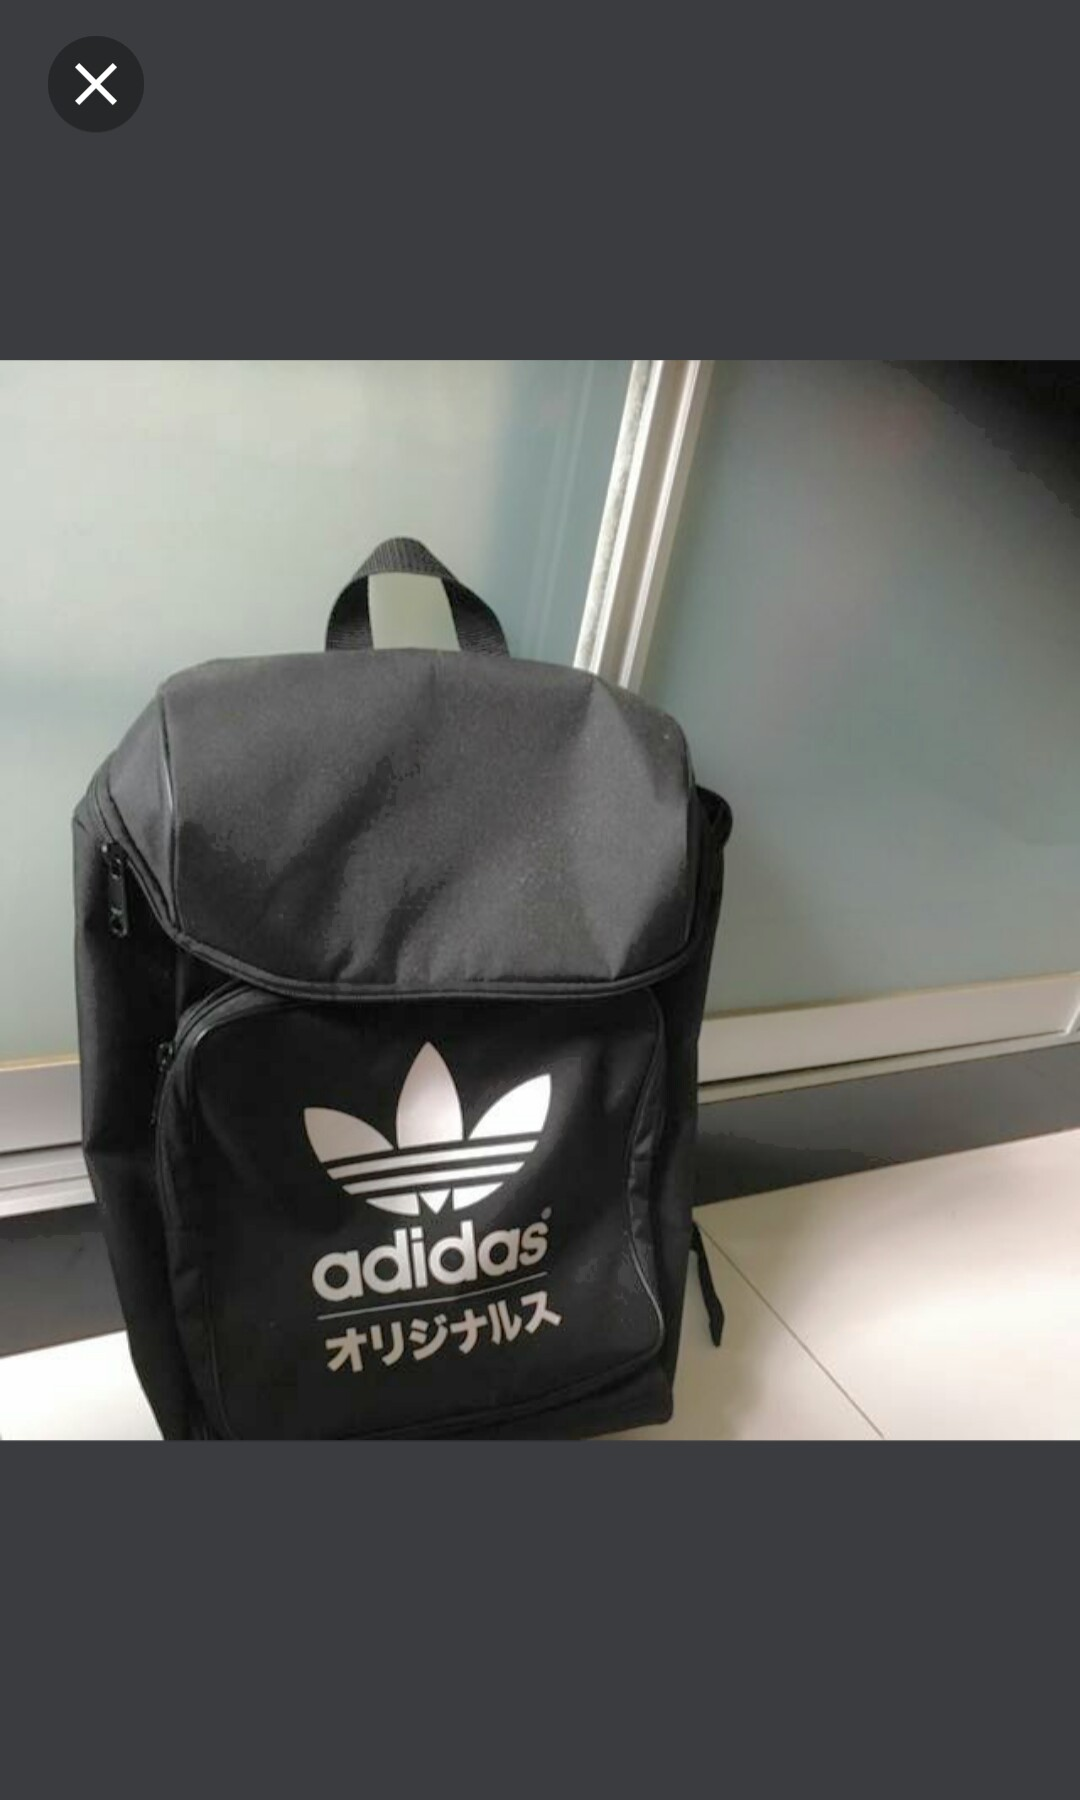 df246f80595 Typo Adidas Backpack, Women s Fashion, Bags   Wallets, Backpacks on ...